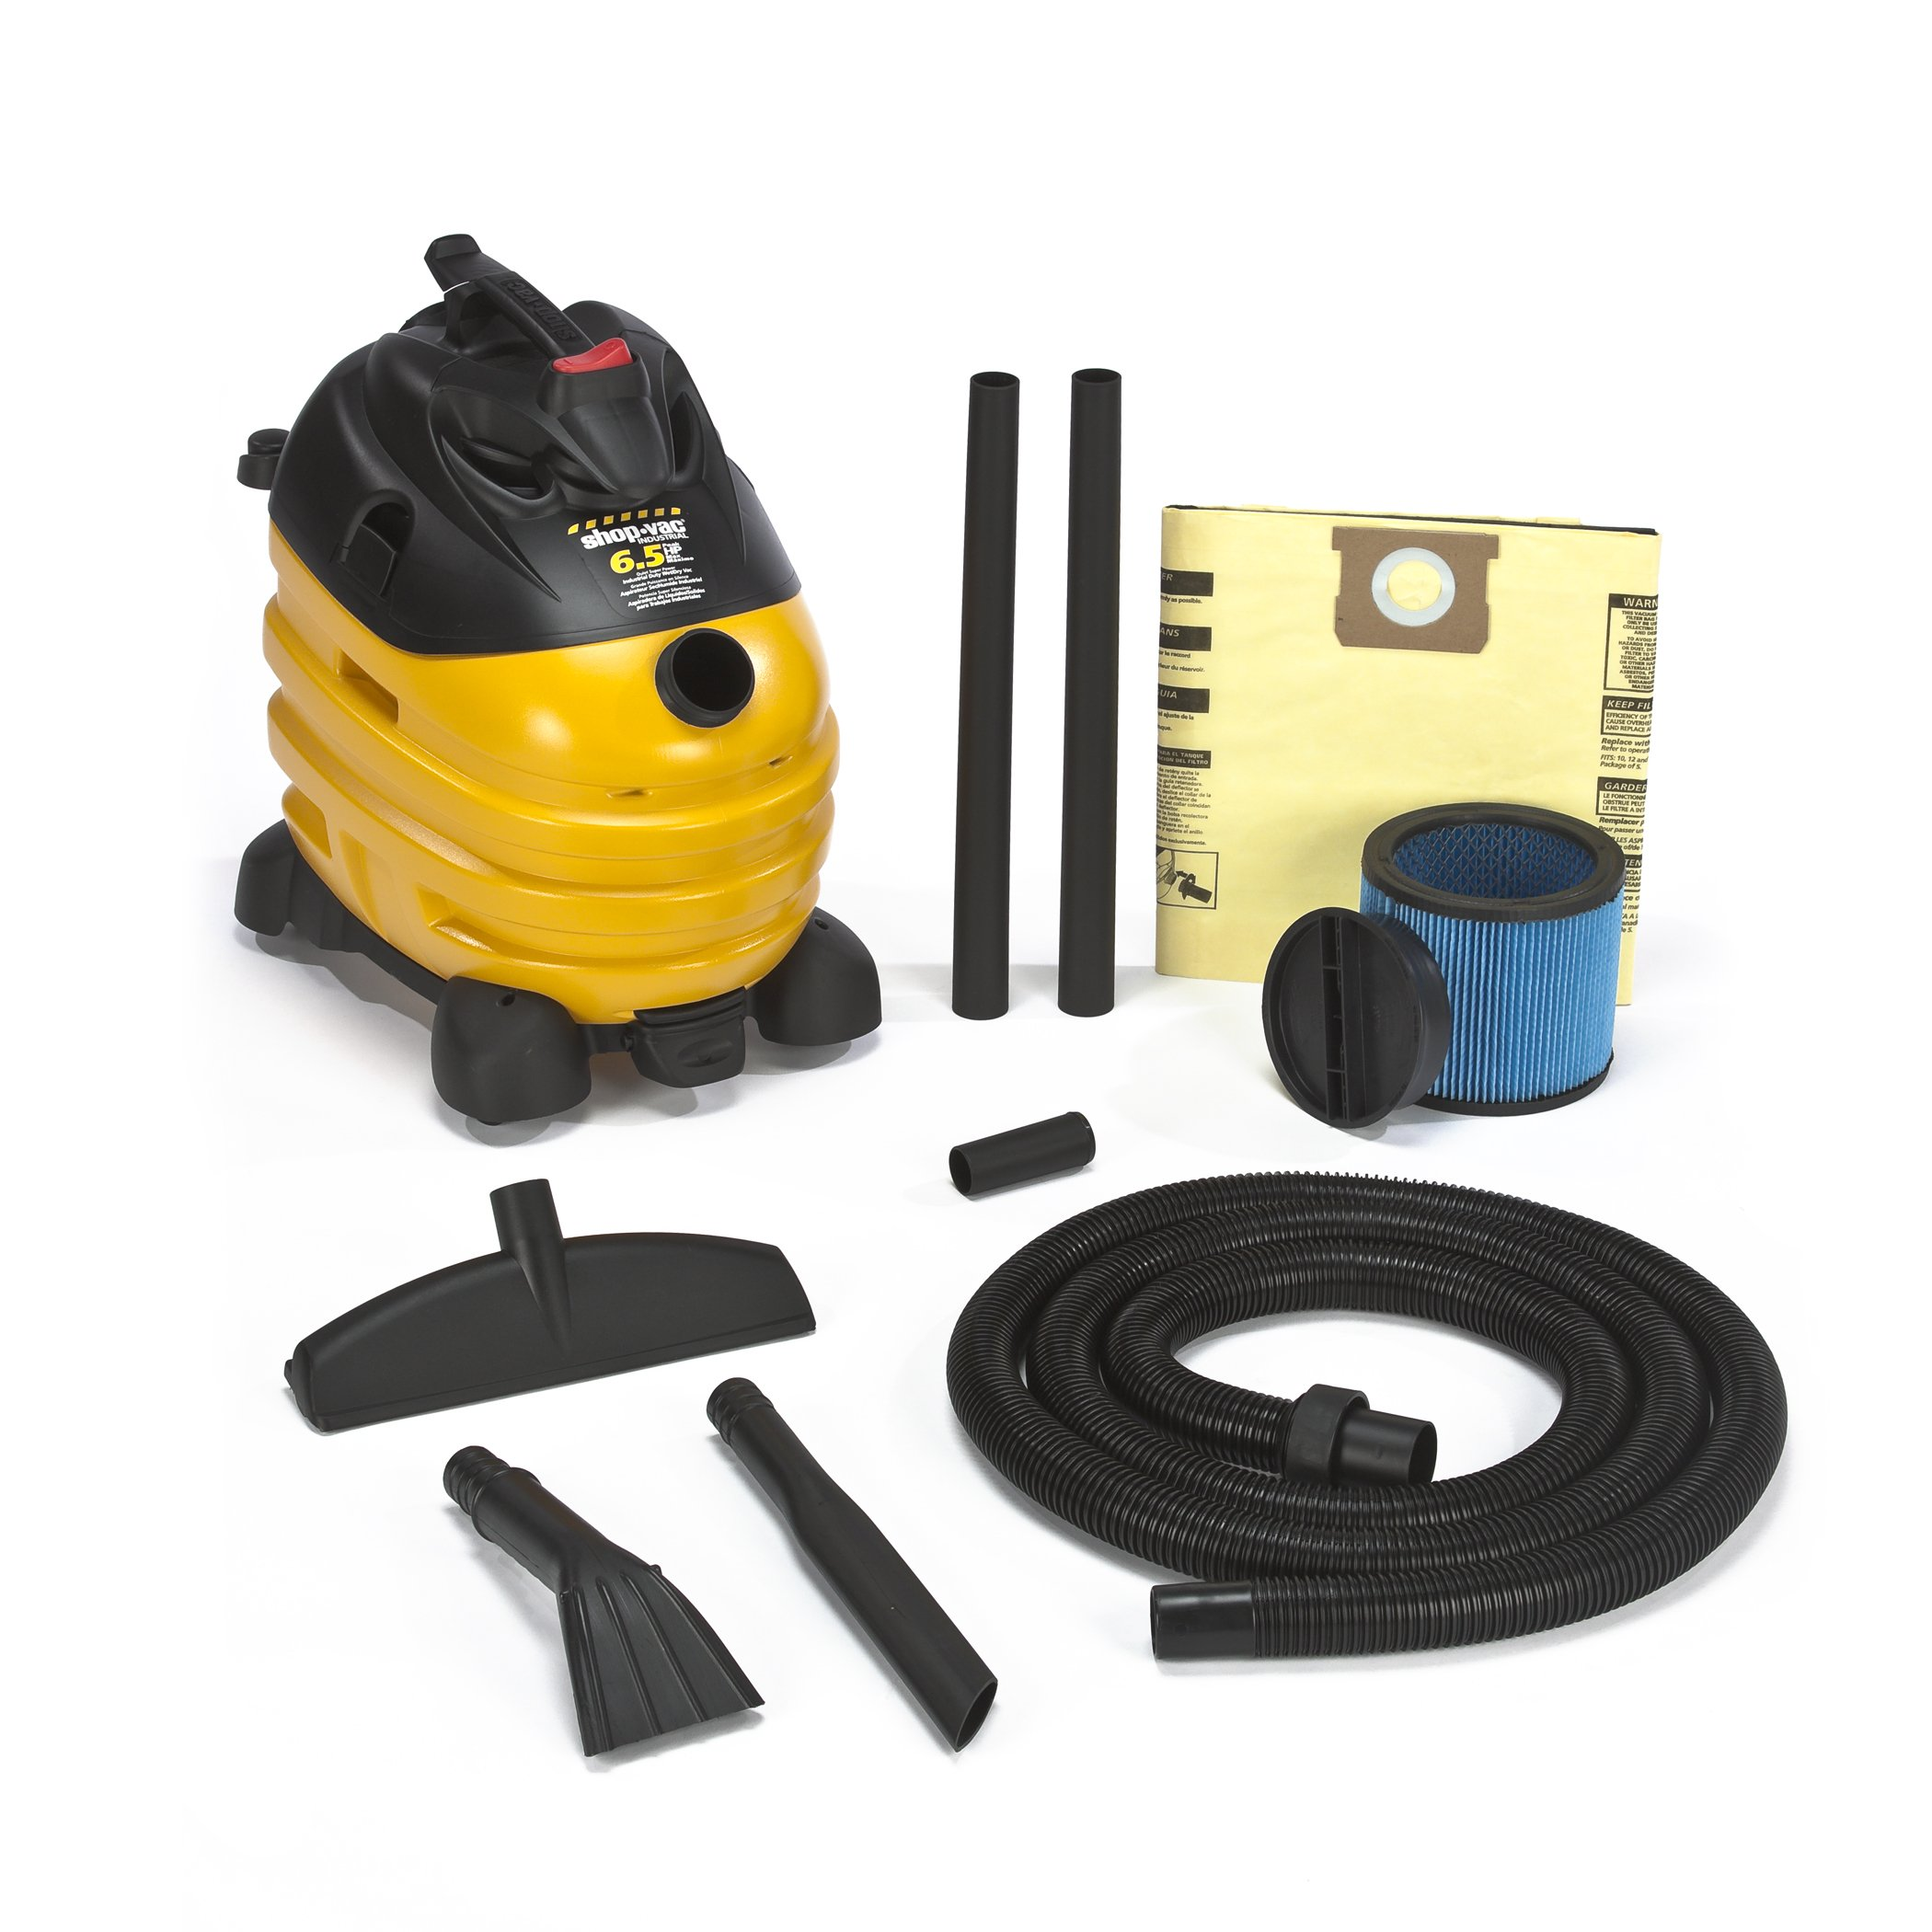 Shop-Vac 5873410 6.5-Peak Horsepower Right Stuff Wet/Dry Vacuum 10-Gallon by Shop-Vac